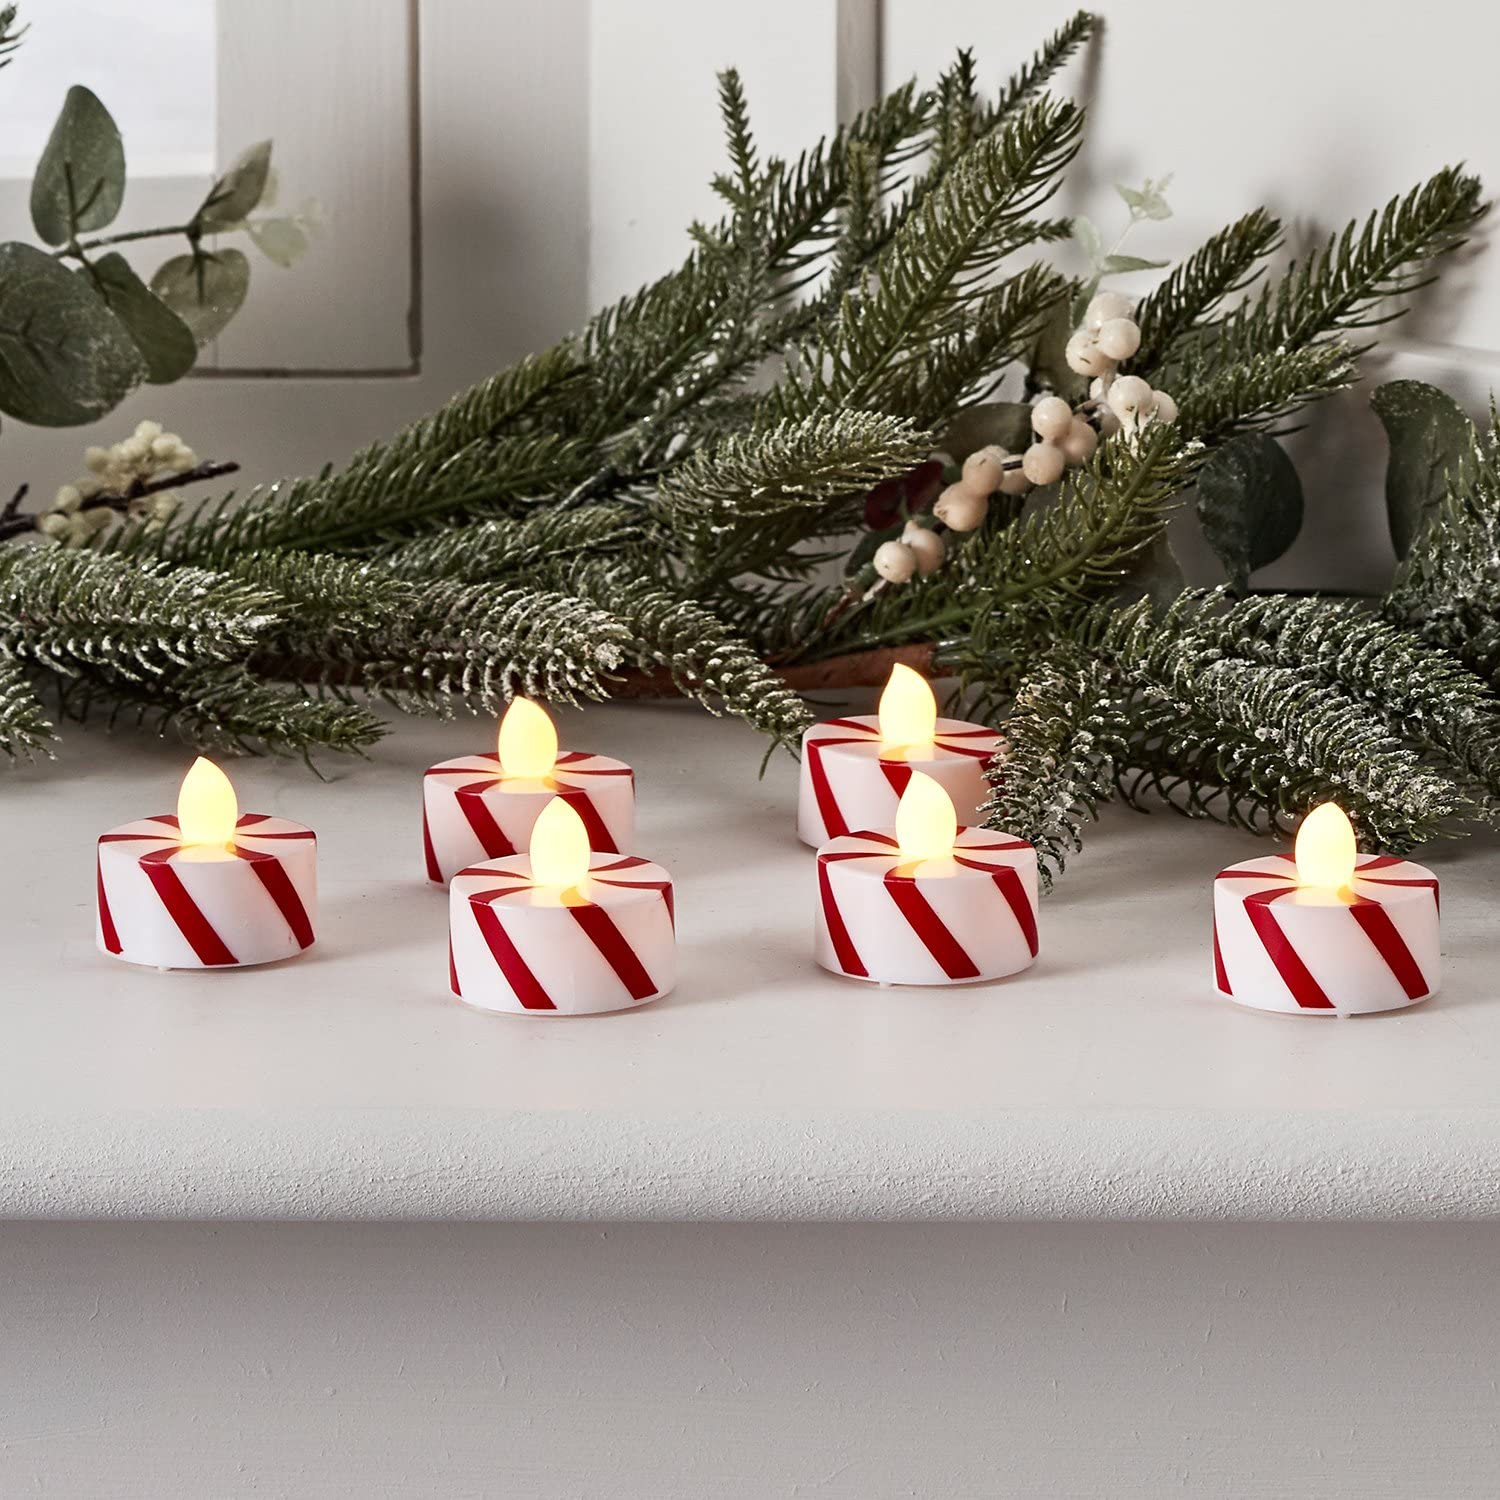 Set of 6 Candy Cane Striped Flameless Battery Operated LED Christmas Tea Lights